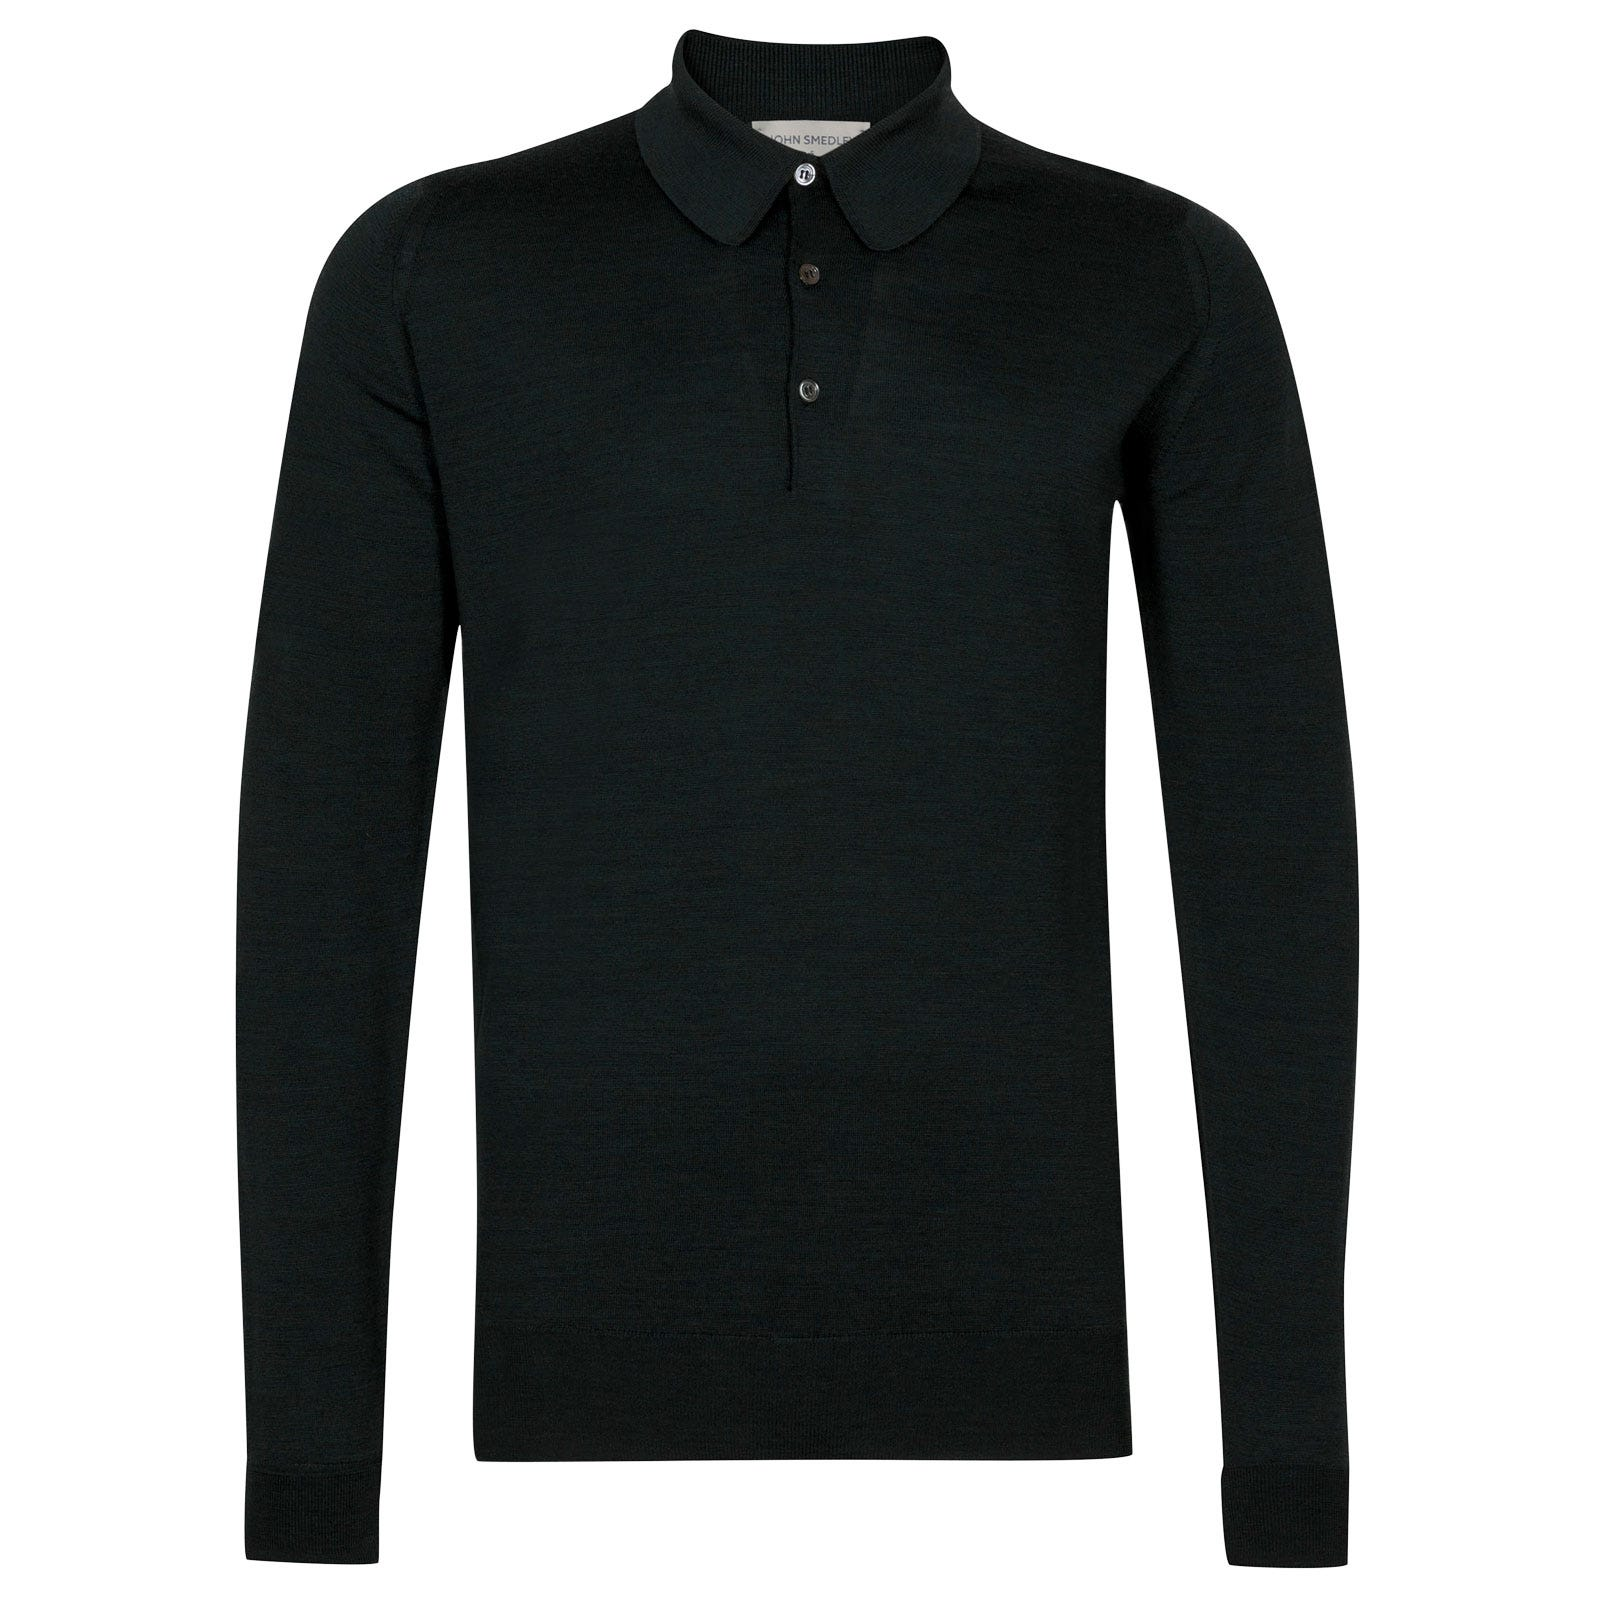 John Smedley Dorset Merino Wool Shirt in Racing Green-XL